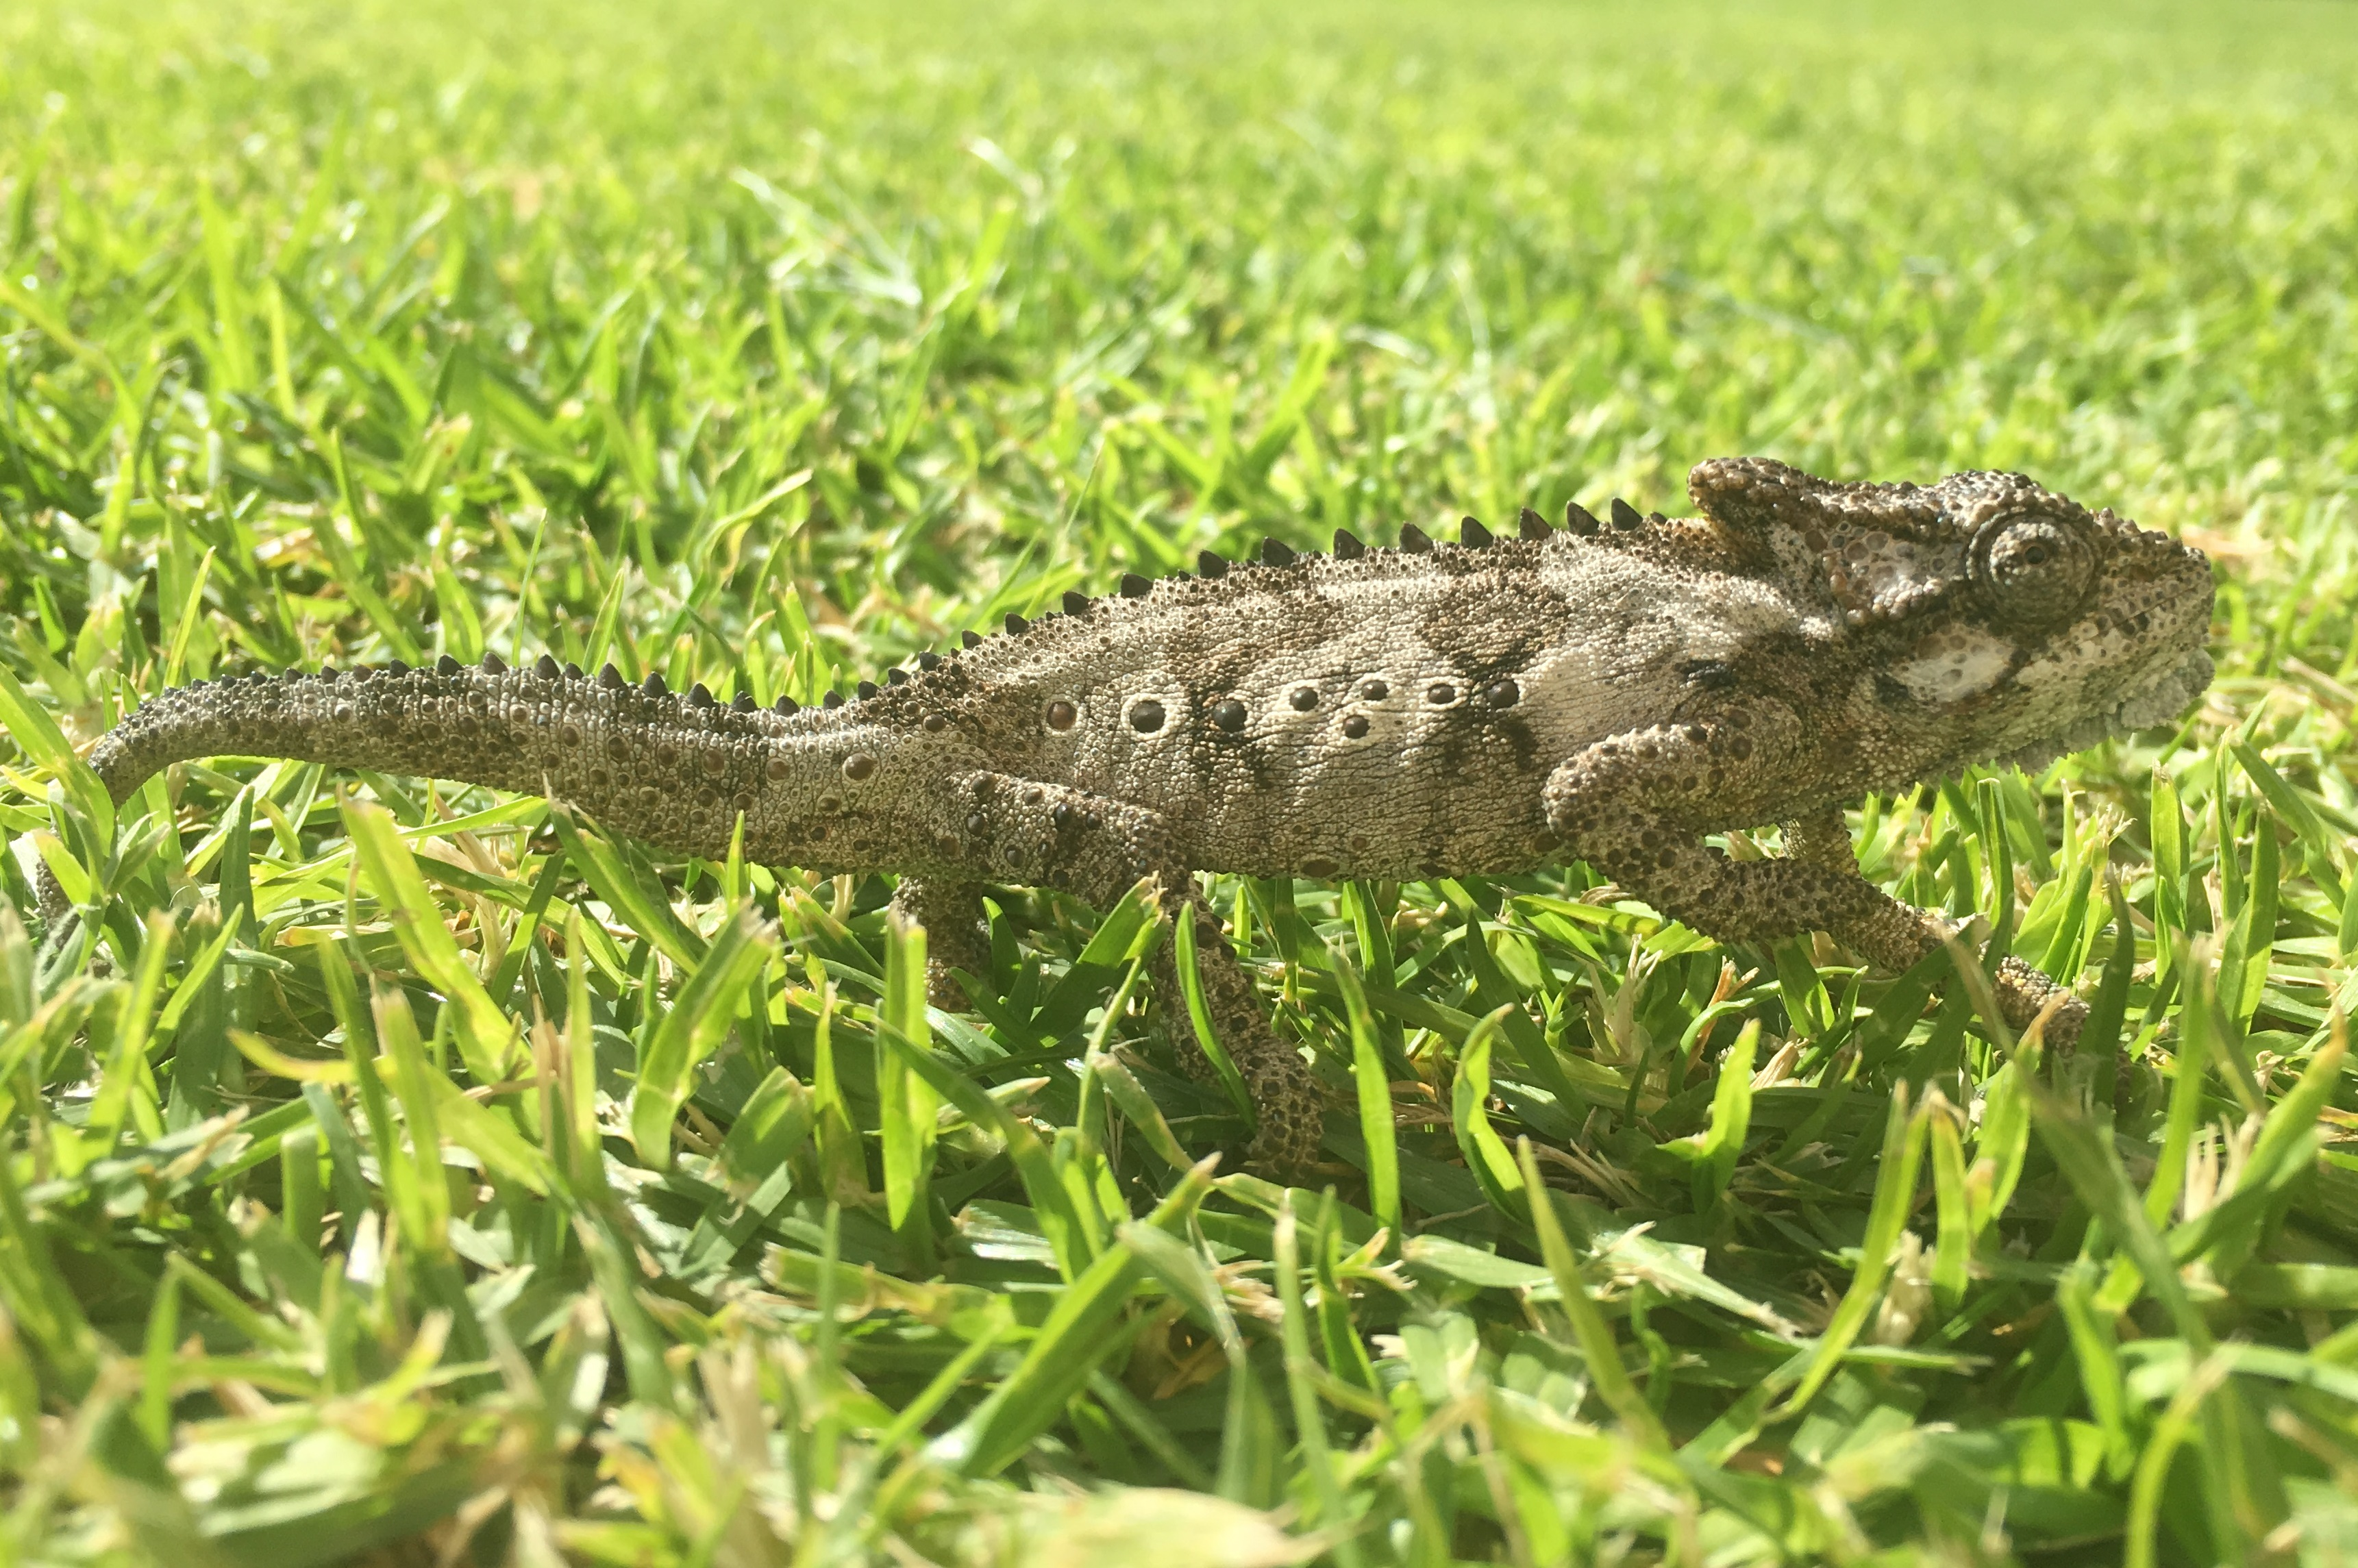 A Reptilian encounter in suburban South Africa